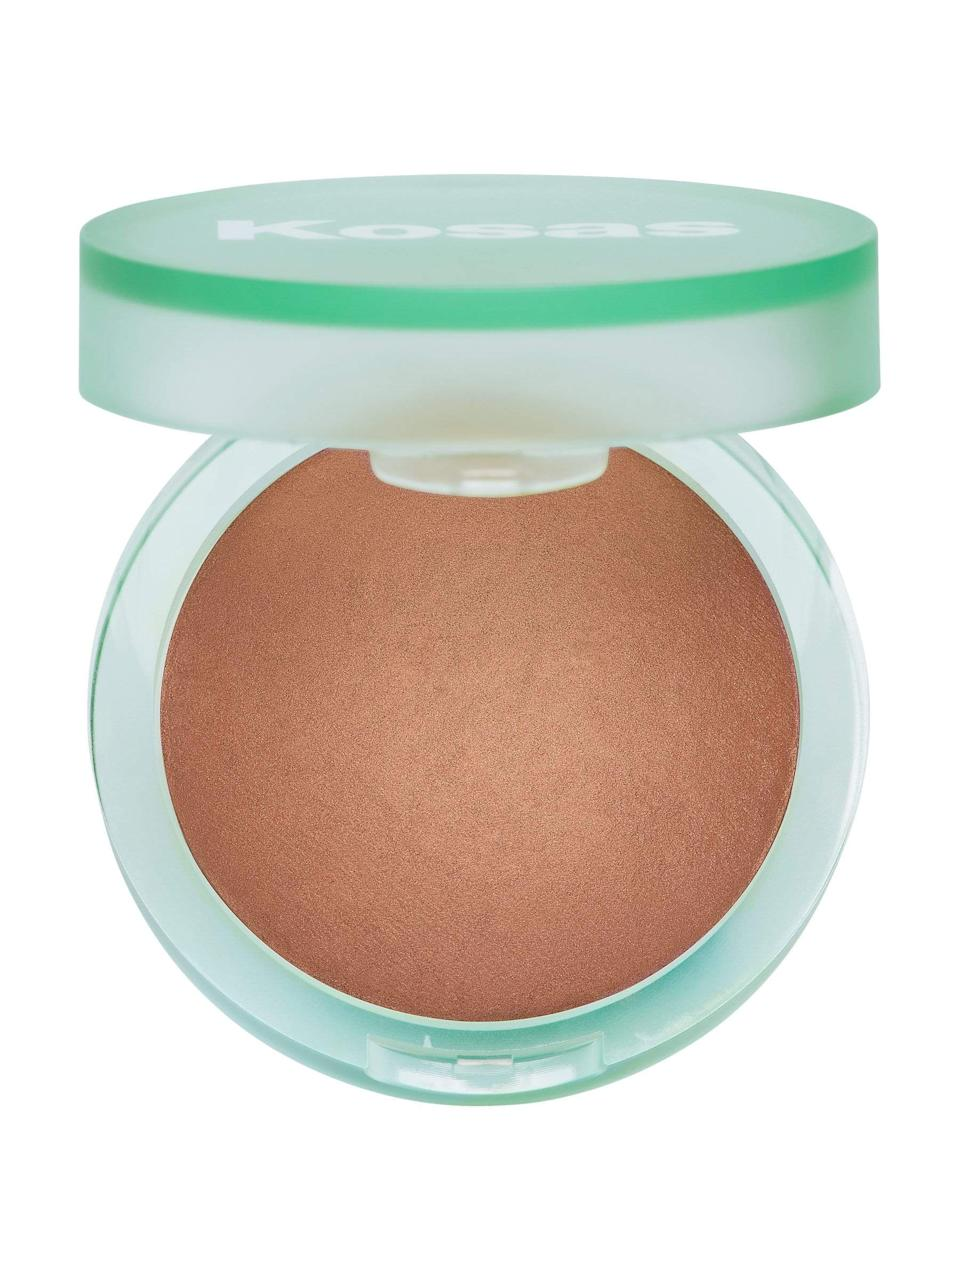 "<h3>The Sun Show</h3><br>Bring the sunny outdoors to your skin (minus UV damage) with this baked bronzer, encased in the prettiest seaglass-inspired compact that could easily be borrowed from Princess Ariel.<br><br><strong>Kosas</strong> The Sun Show Bronzer, $, available at <a href=""https://go.skimresources.com/?id=30283X879131&url=https%3A%2F%2Fkosas.com%2Fproducts%2Fthe-sun-show-bronzer-medium"" rel=""nofollow noopener"" target=""_blank"" data-ylk=""slk:Kosas"" class=""link rapid-noclick-resp"">Kosas</a>"